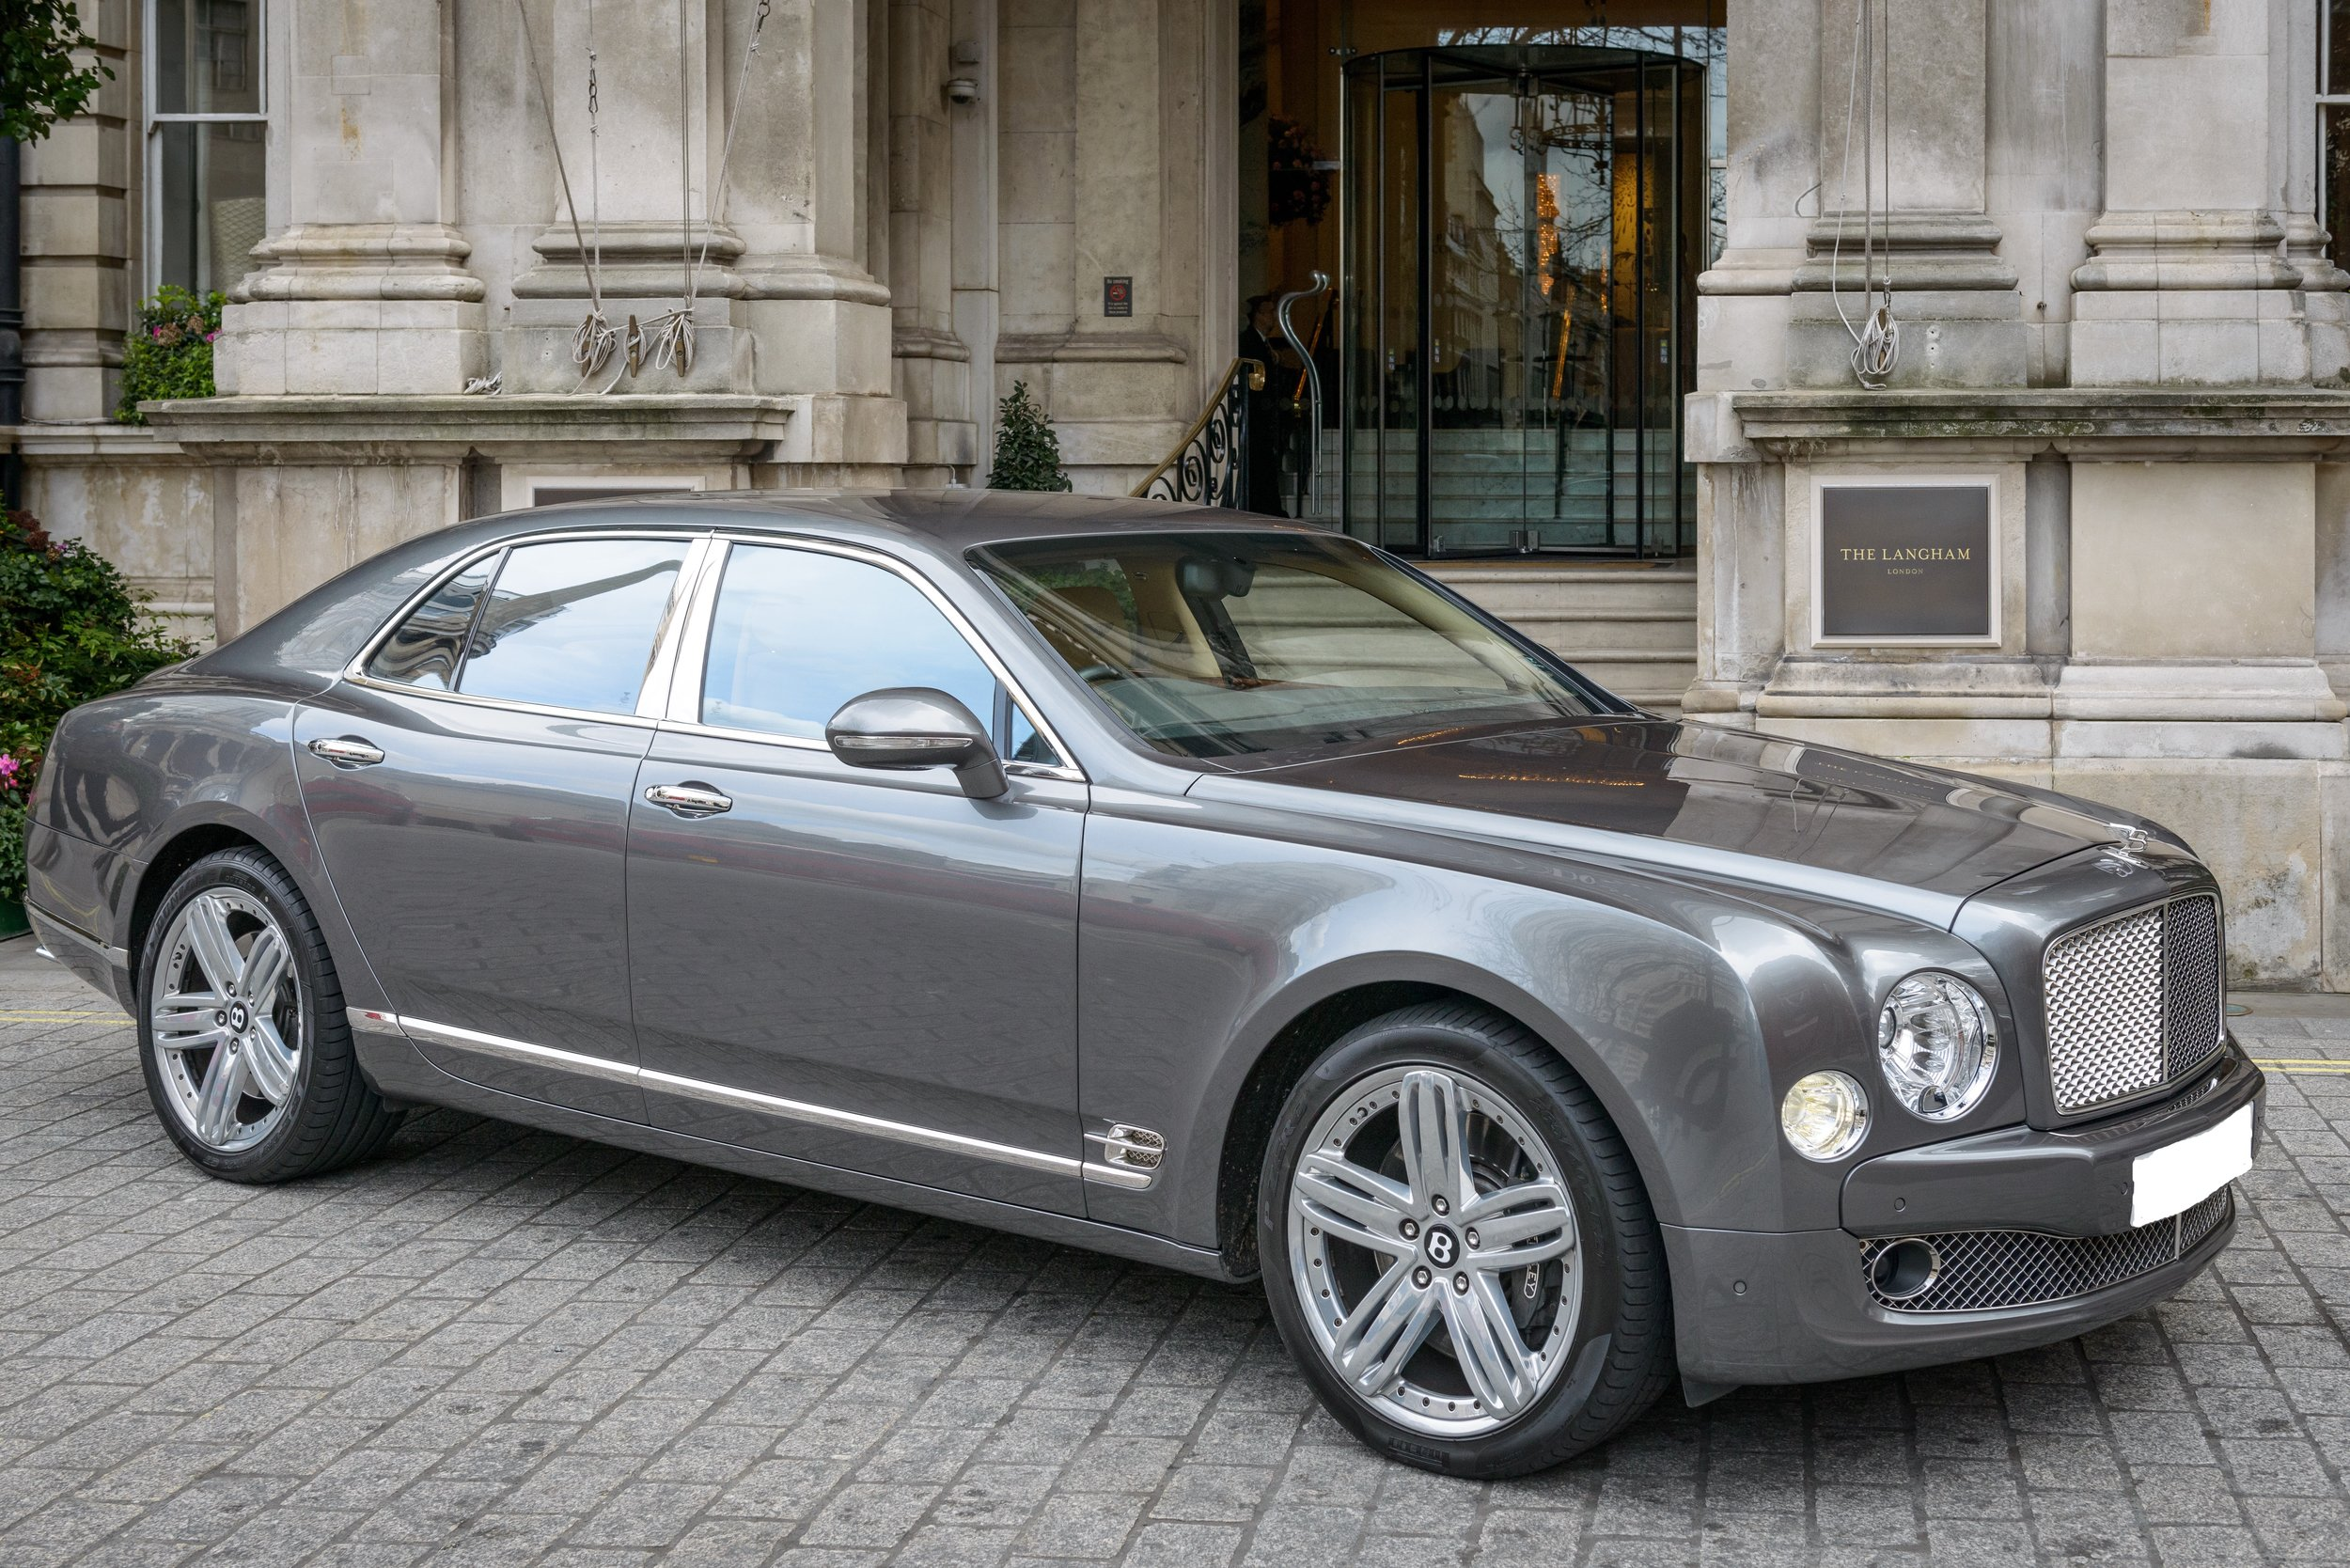 Bentley Mulsanne - Chauffeur-driven car hire - Cobham, Surrey